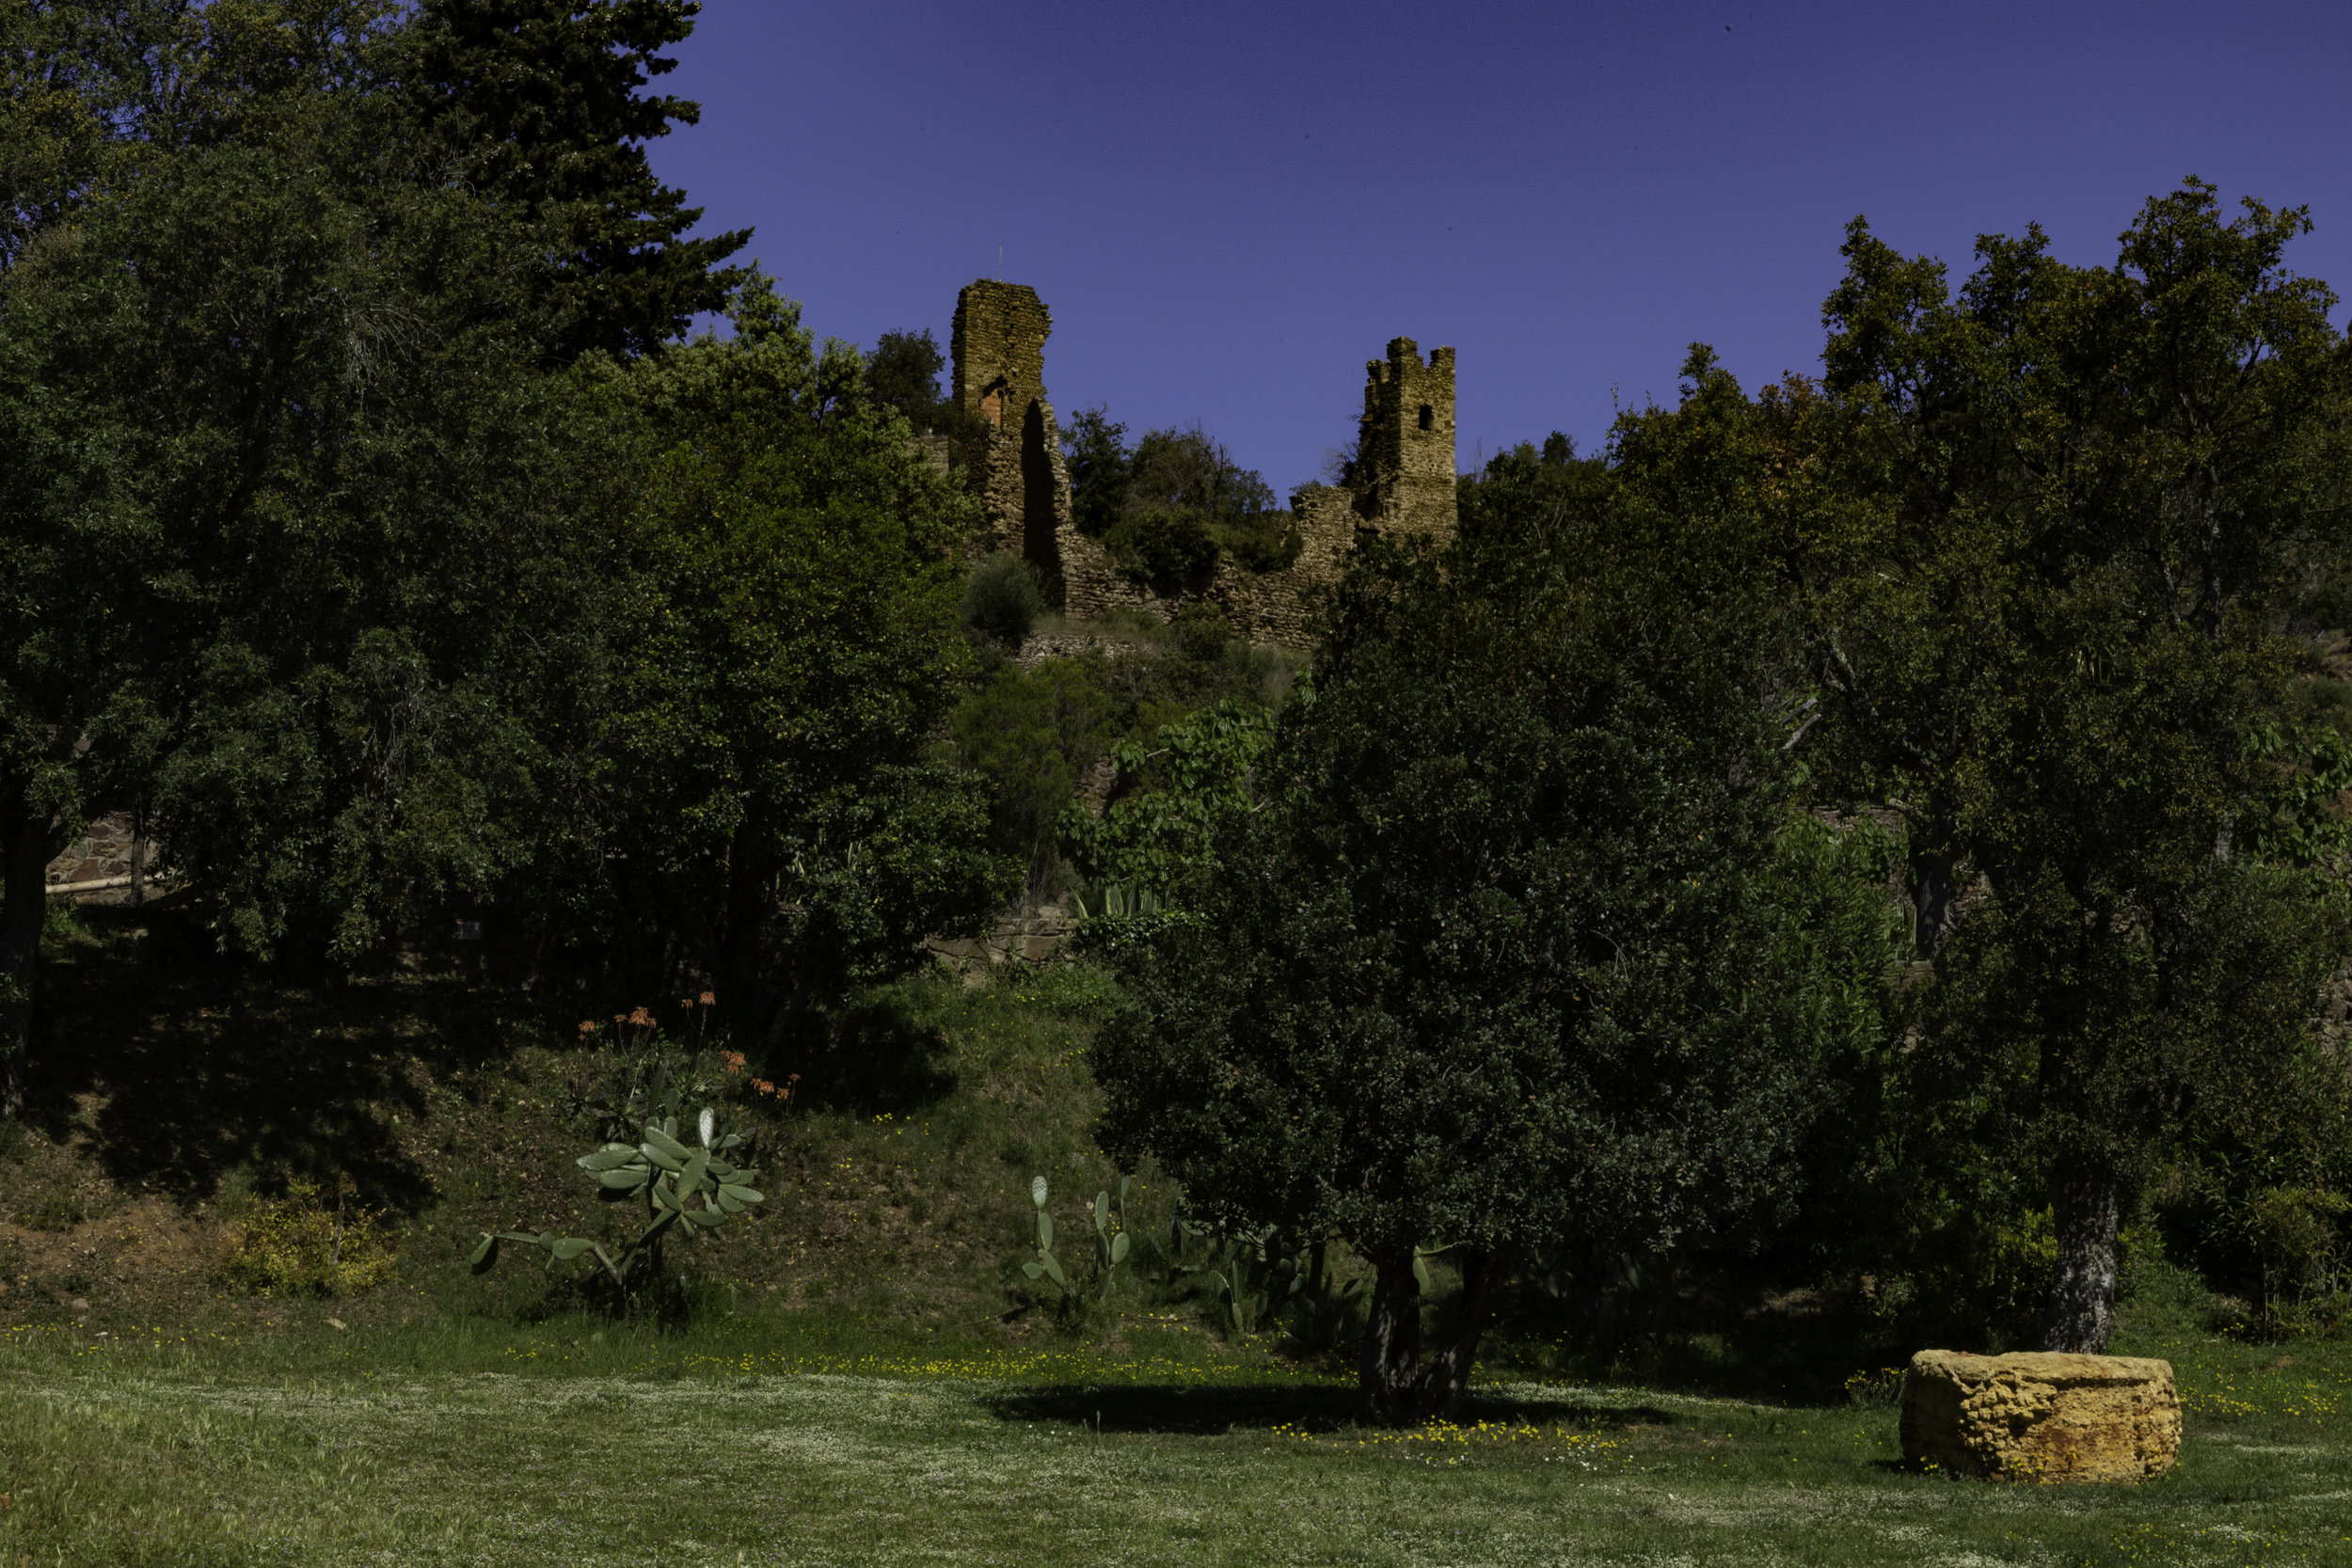 The old castle which was destroyed by Napoleons forces